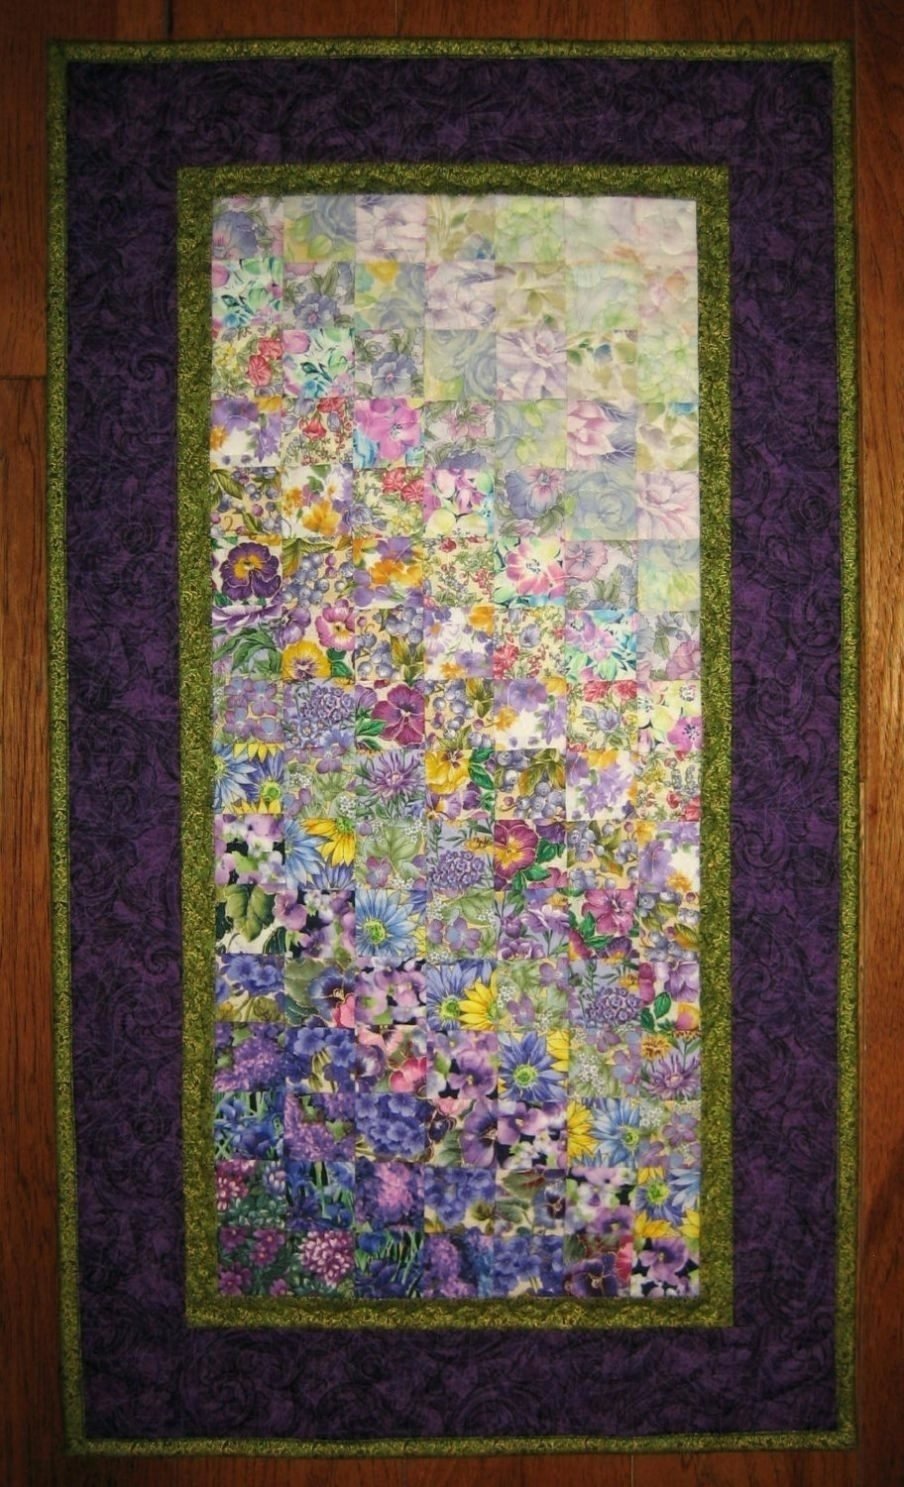 Wall Arts ~ Fabric Panel Wall Art How To Make Large Fabric Panel Within Newest Diy Fabric Panel Wall Art (View 10 of 15)